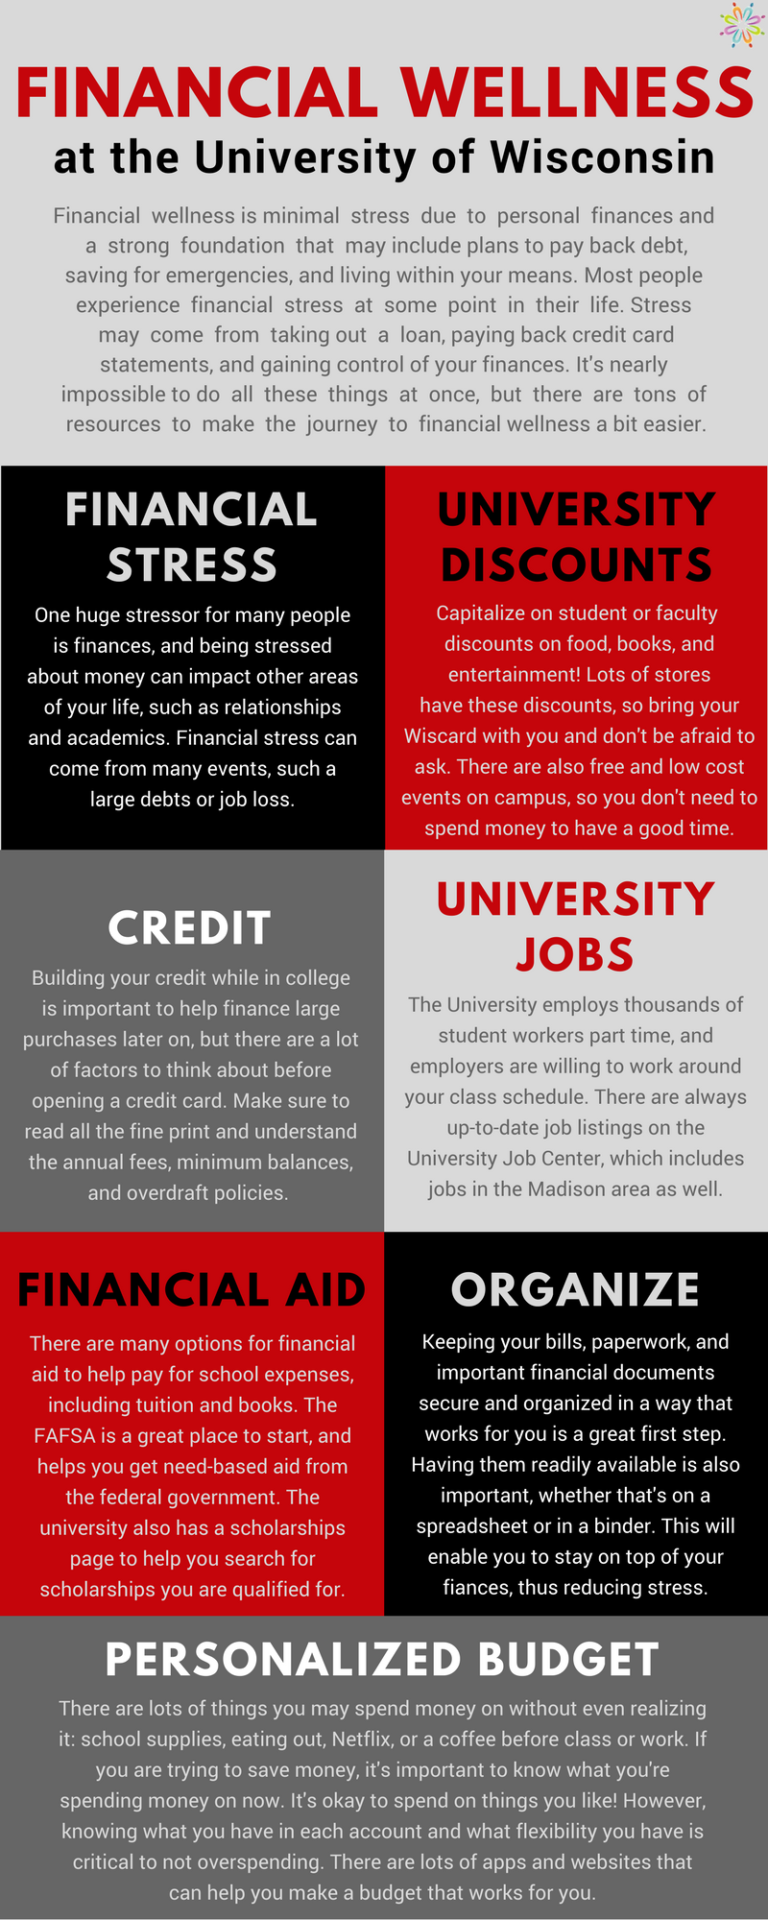 Financial Wellness at the University of Wisconsin. Financial wellness is minimal stress due to personal finances and a strong foundation that may include plans to pay back debt, saving for emergencies, and living within your means. Most people experience financial stress at some point in their life. Stress may come from taking out a loan, paying back credit card statements, and gaining control of your finances. It's nearly impossible to do all these things at once, but there are tons of resources to make the journey to financial wellness a bit easier. Financial stress: One huge stressor for many people is finances, and being stressed about money can impact other areas of your life, such as relationships and academics. Financial stress can come from many events, such a large debts or job loss. University Discounts: Capitalize on student or faculty discounts on food, books, and entertainment! Lots of stores have these discounts, so bring your Wiscard with you and don't be afraid to ask. There are also free and low cost events on campus, so you don't need to spend money to have a good time. Credit: Building your credit while in college is important to help finance large purchases later on, but there are a lot of factors to think about before opening a credit card. Make sure to read all the fine print and understand the annual fees, minimum balances, and overdraft policies. University Jobs: The University employs thousands of student workers part time, and employers are willing to work around your class schedule. There are always up-to-date job listings on the University Job Center, which includes jobs in the Madison area as well. Financial Aid: There are many options for financial aid to help pay for school expenses, including tuition and books. The FAFSA is a great place to start, and helps you get need-based aid from the federal government. The university also has a scholarships page to help you search for scholarships you are qualified for. Organize: Keeping your bi